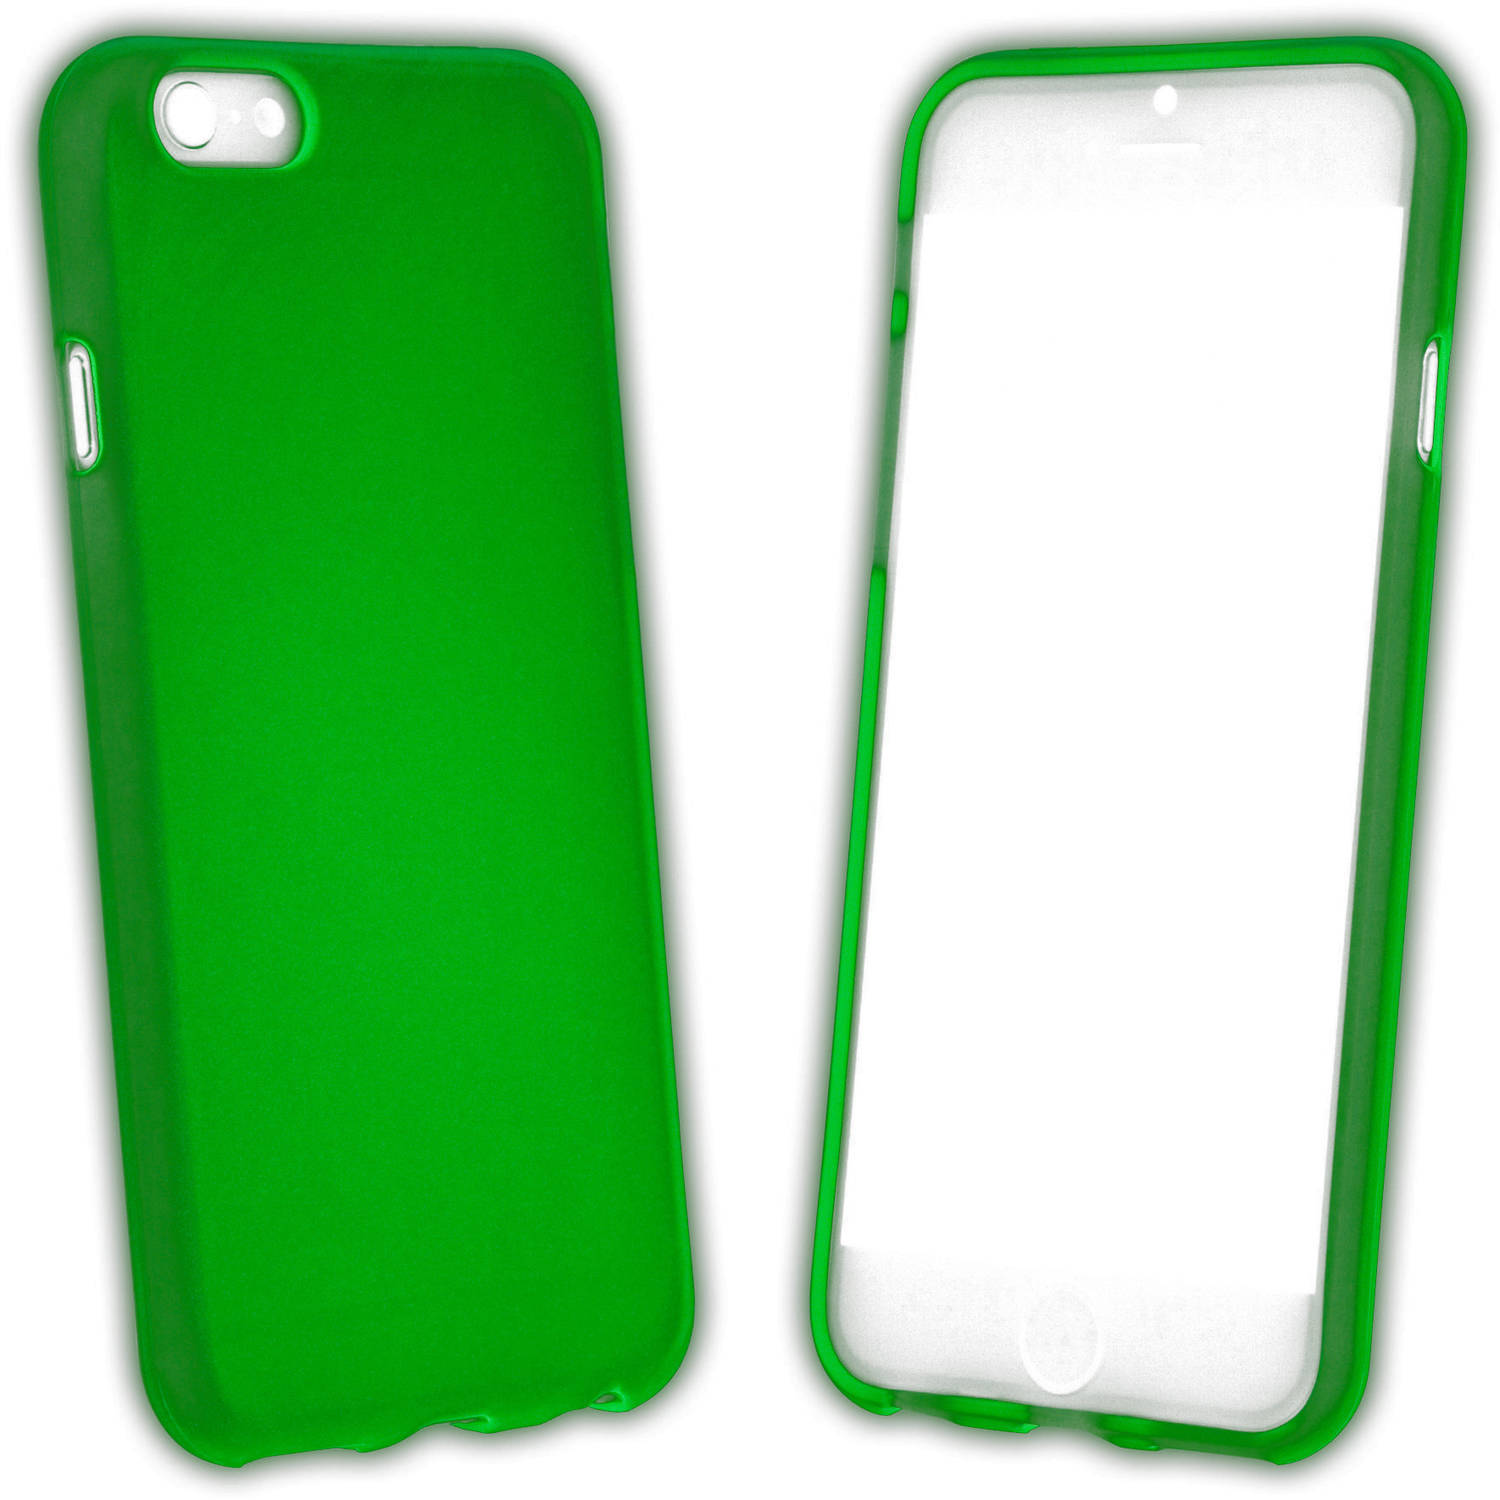 BoxWave Active Glow Case for Apple iPhone 6/6s